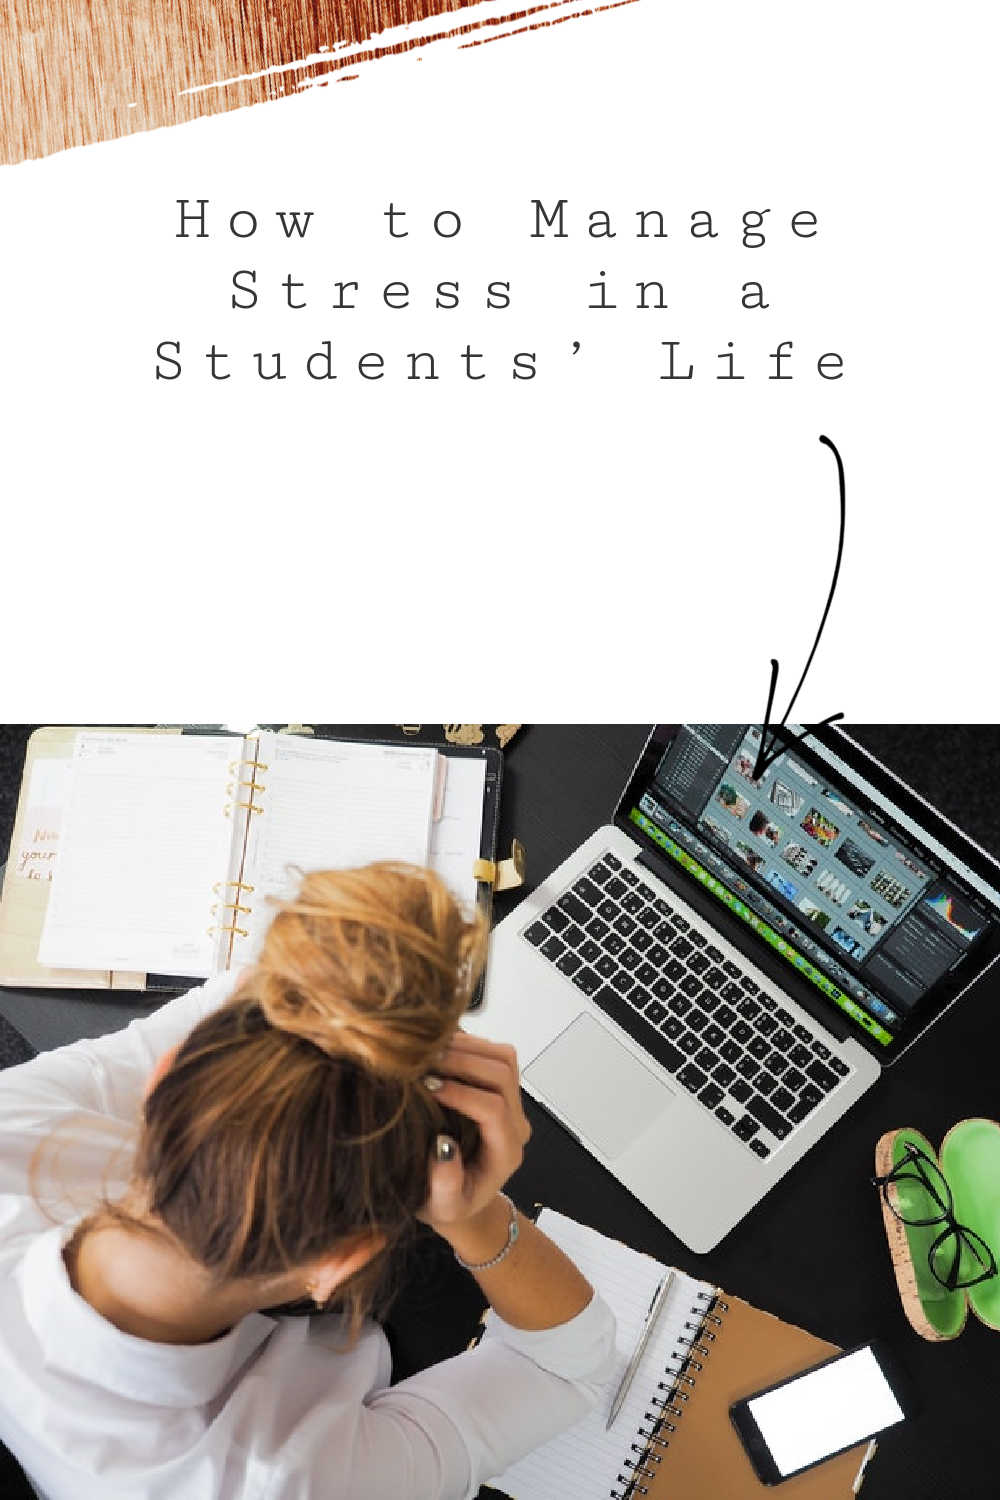 How to Manage Stress in a Students' Life